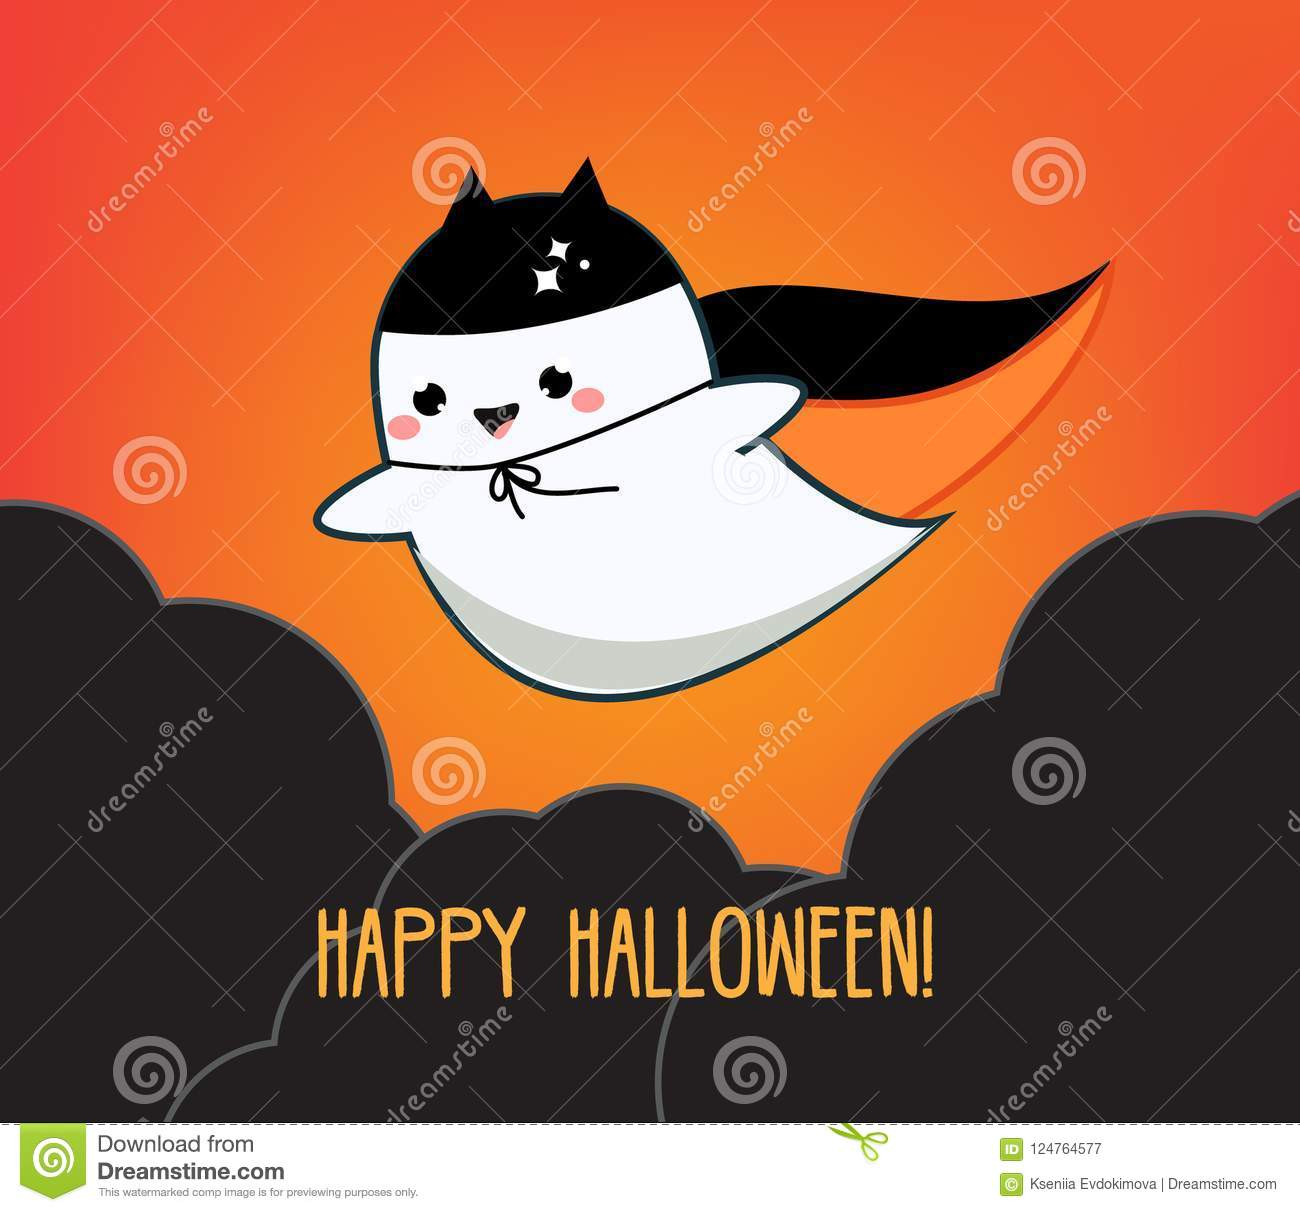 Happy Halloween Greeting Card Holiday Banner With Cute Kawaii Ghost